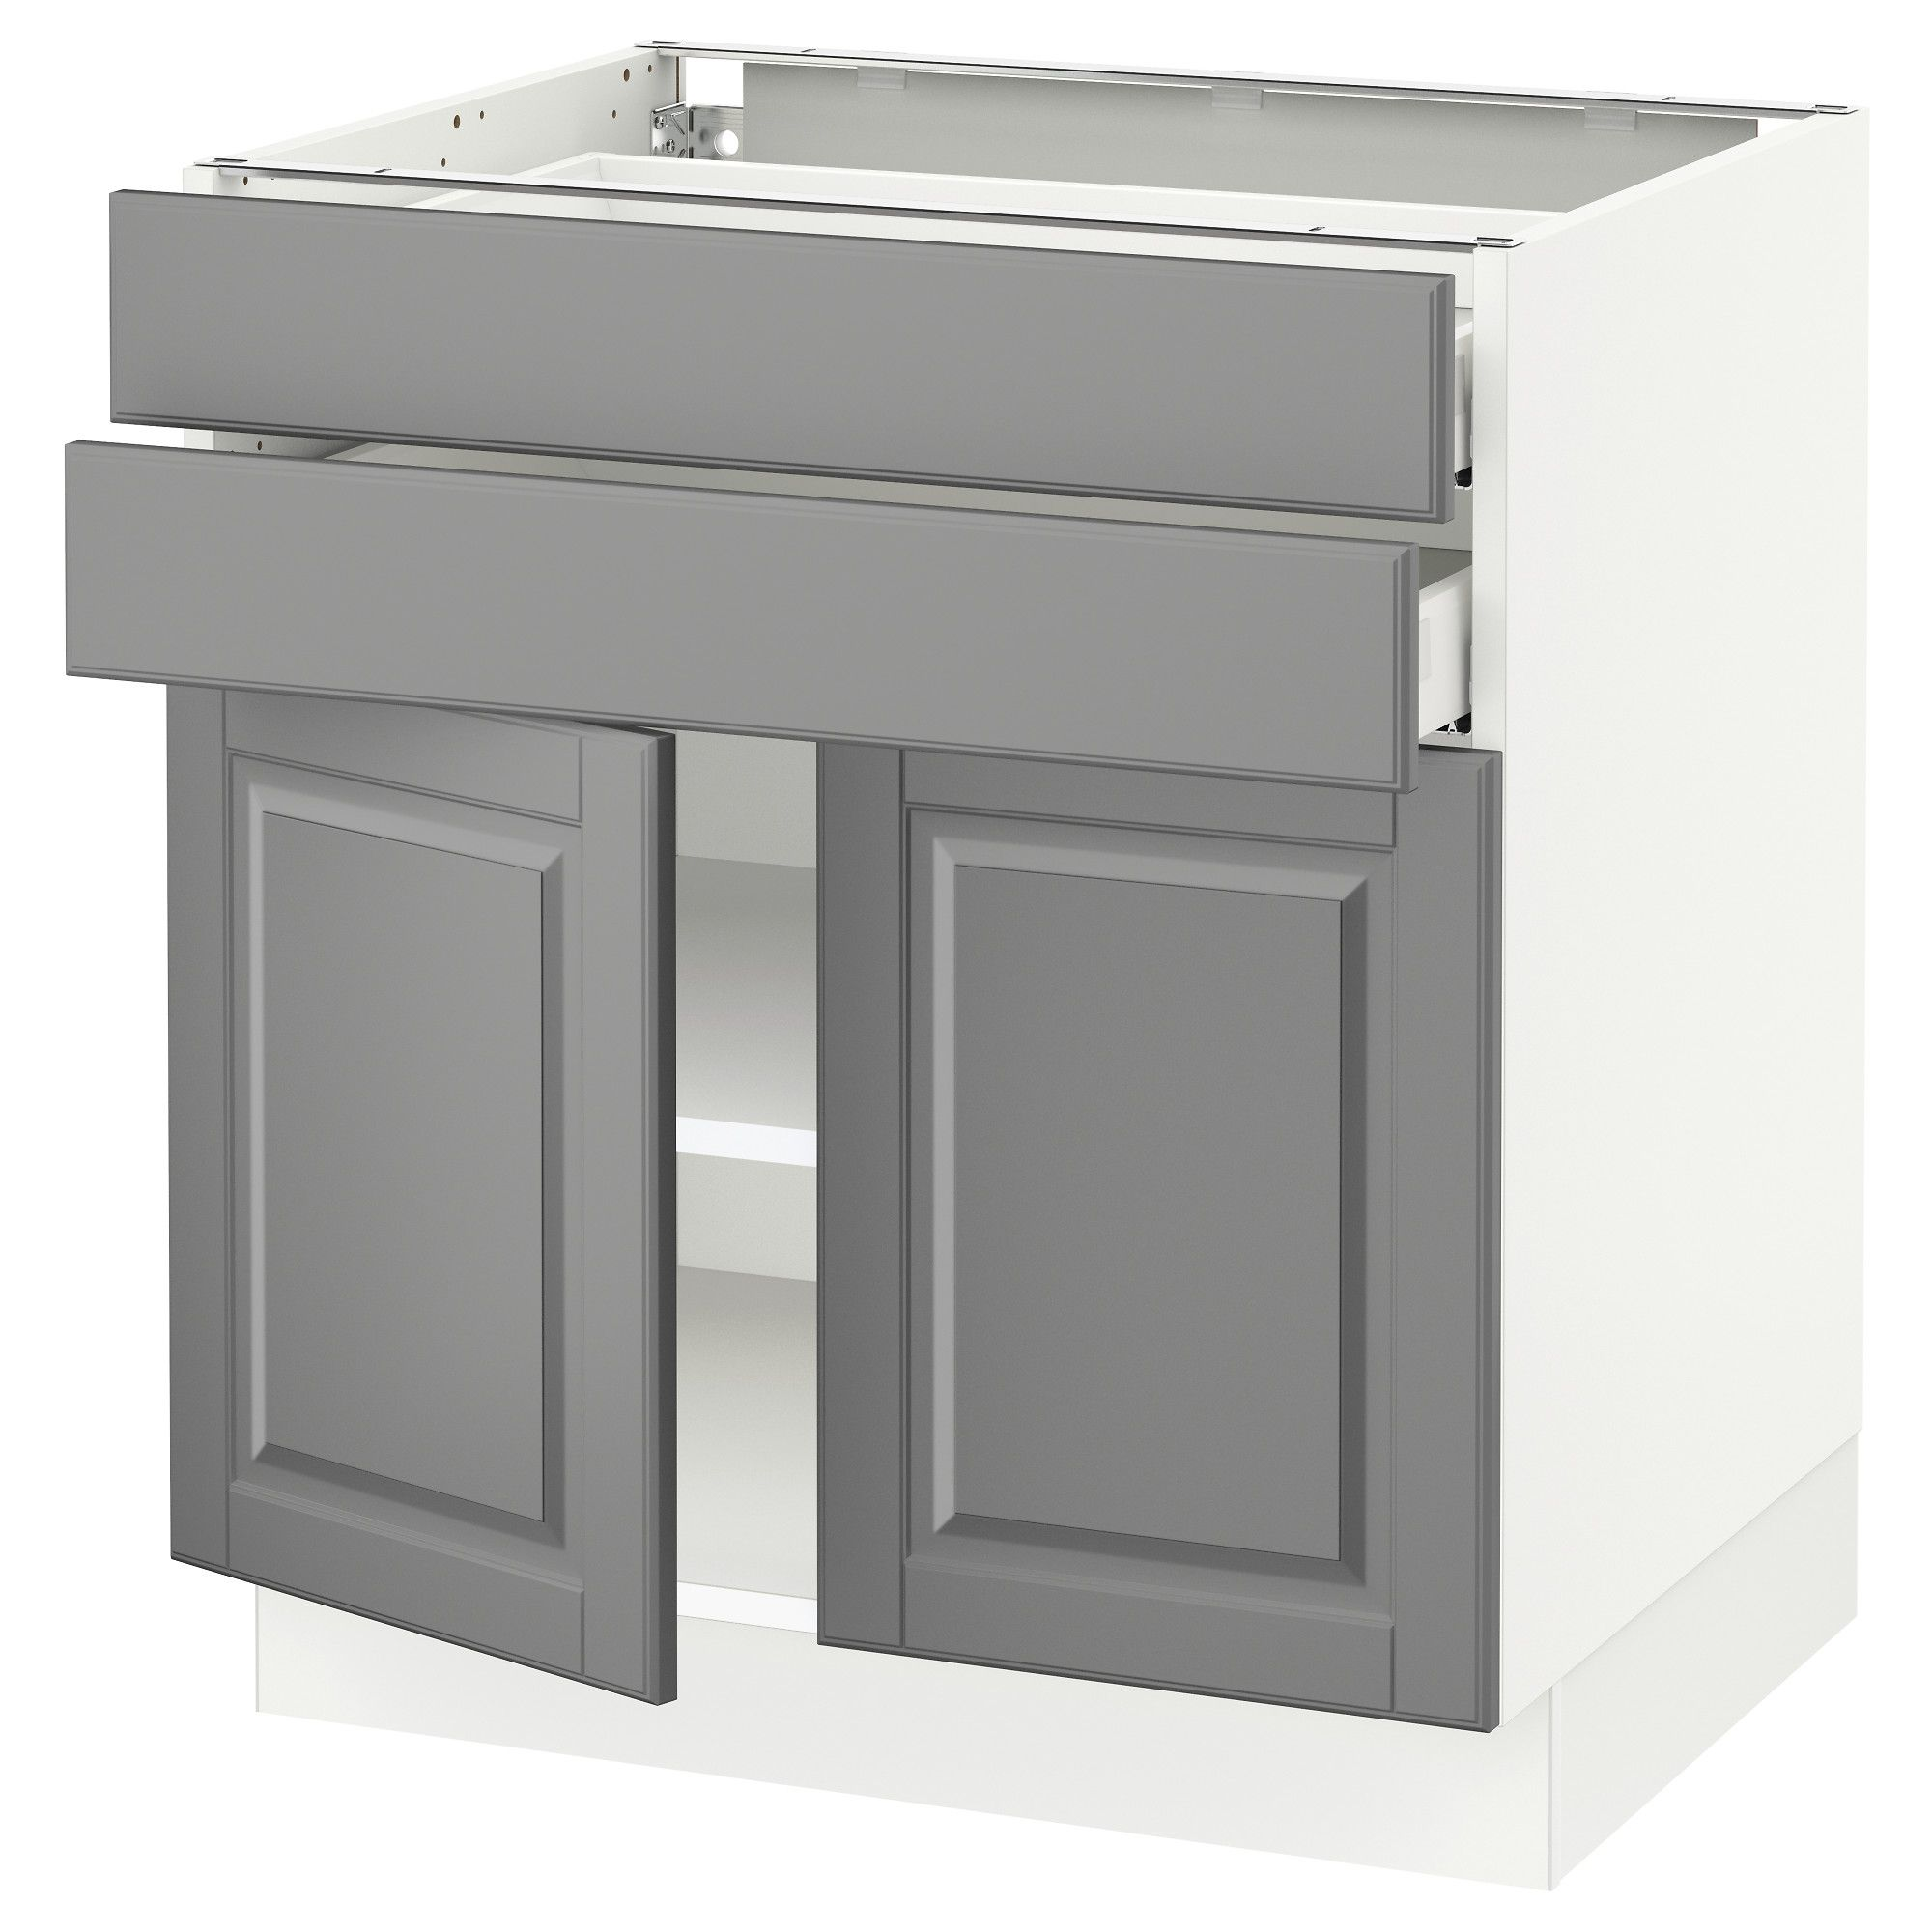 inspiring sink for kitchen styles stunning with drawers files cabinet picture cabinets colorful trend base and doors wallpaper